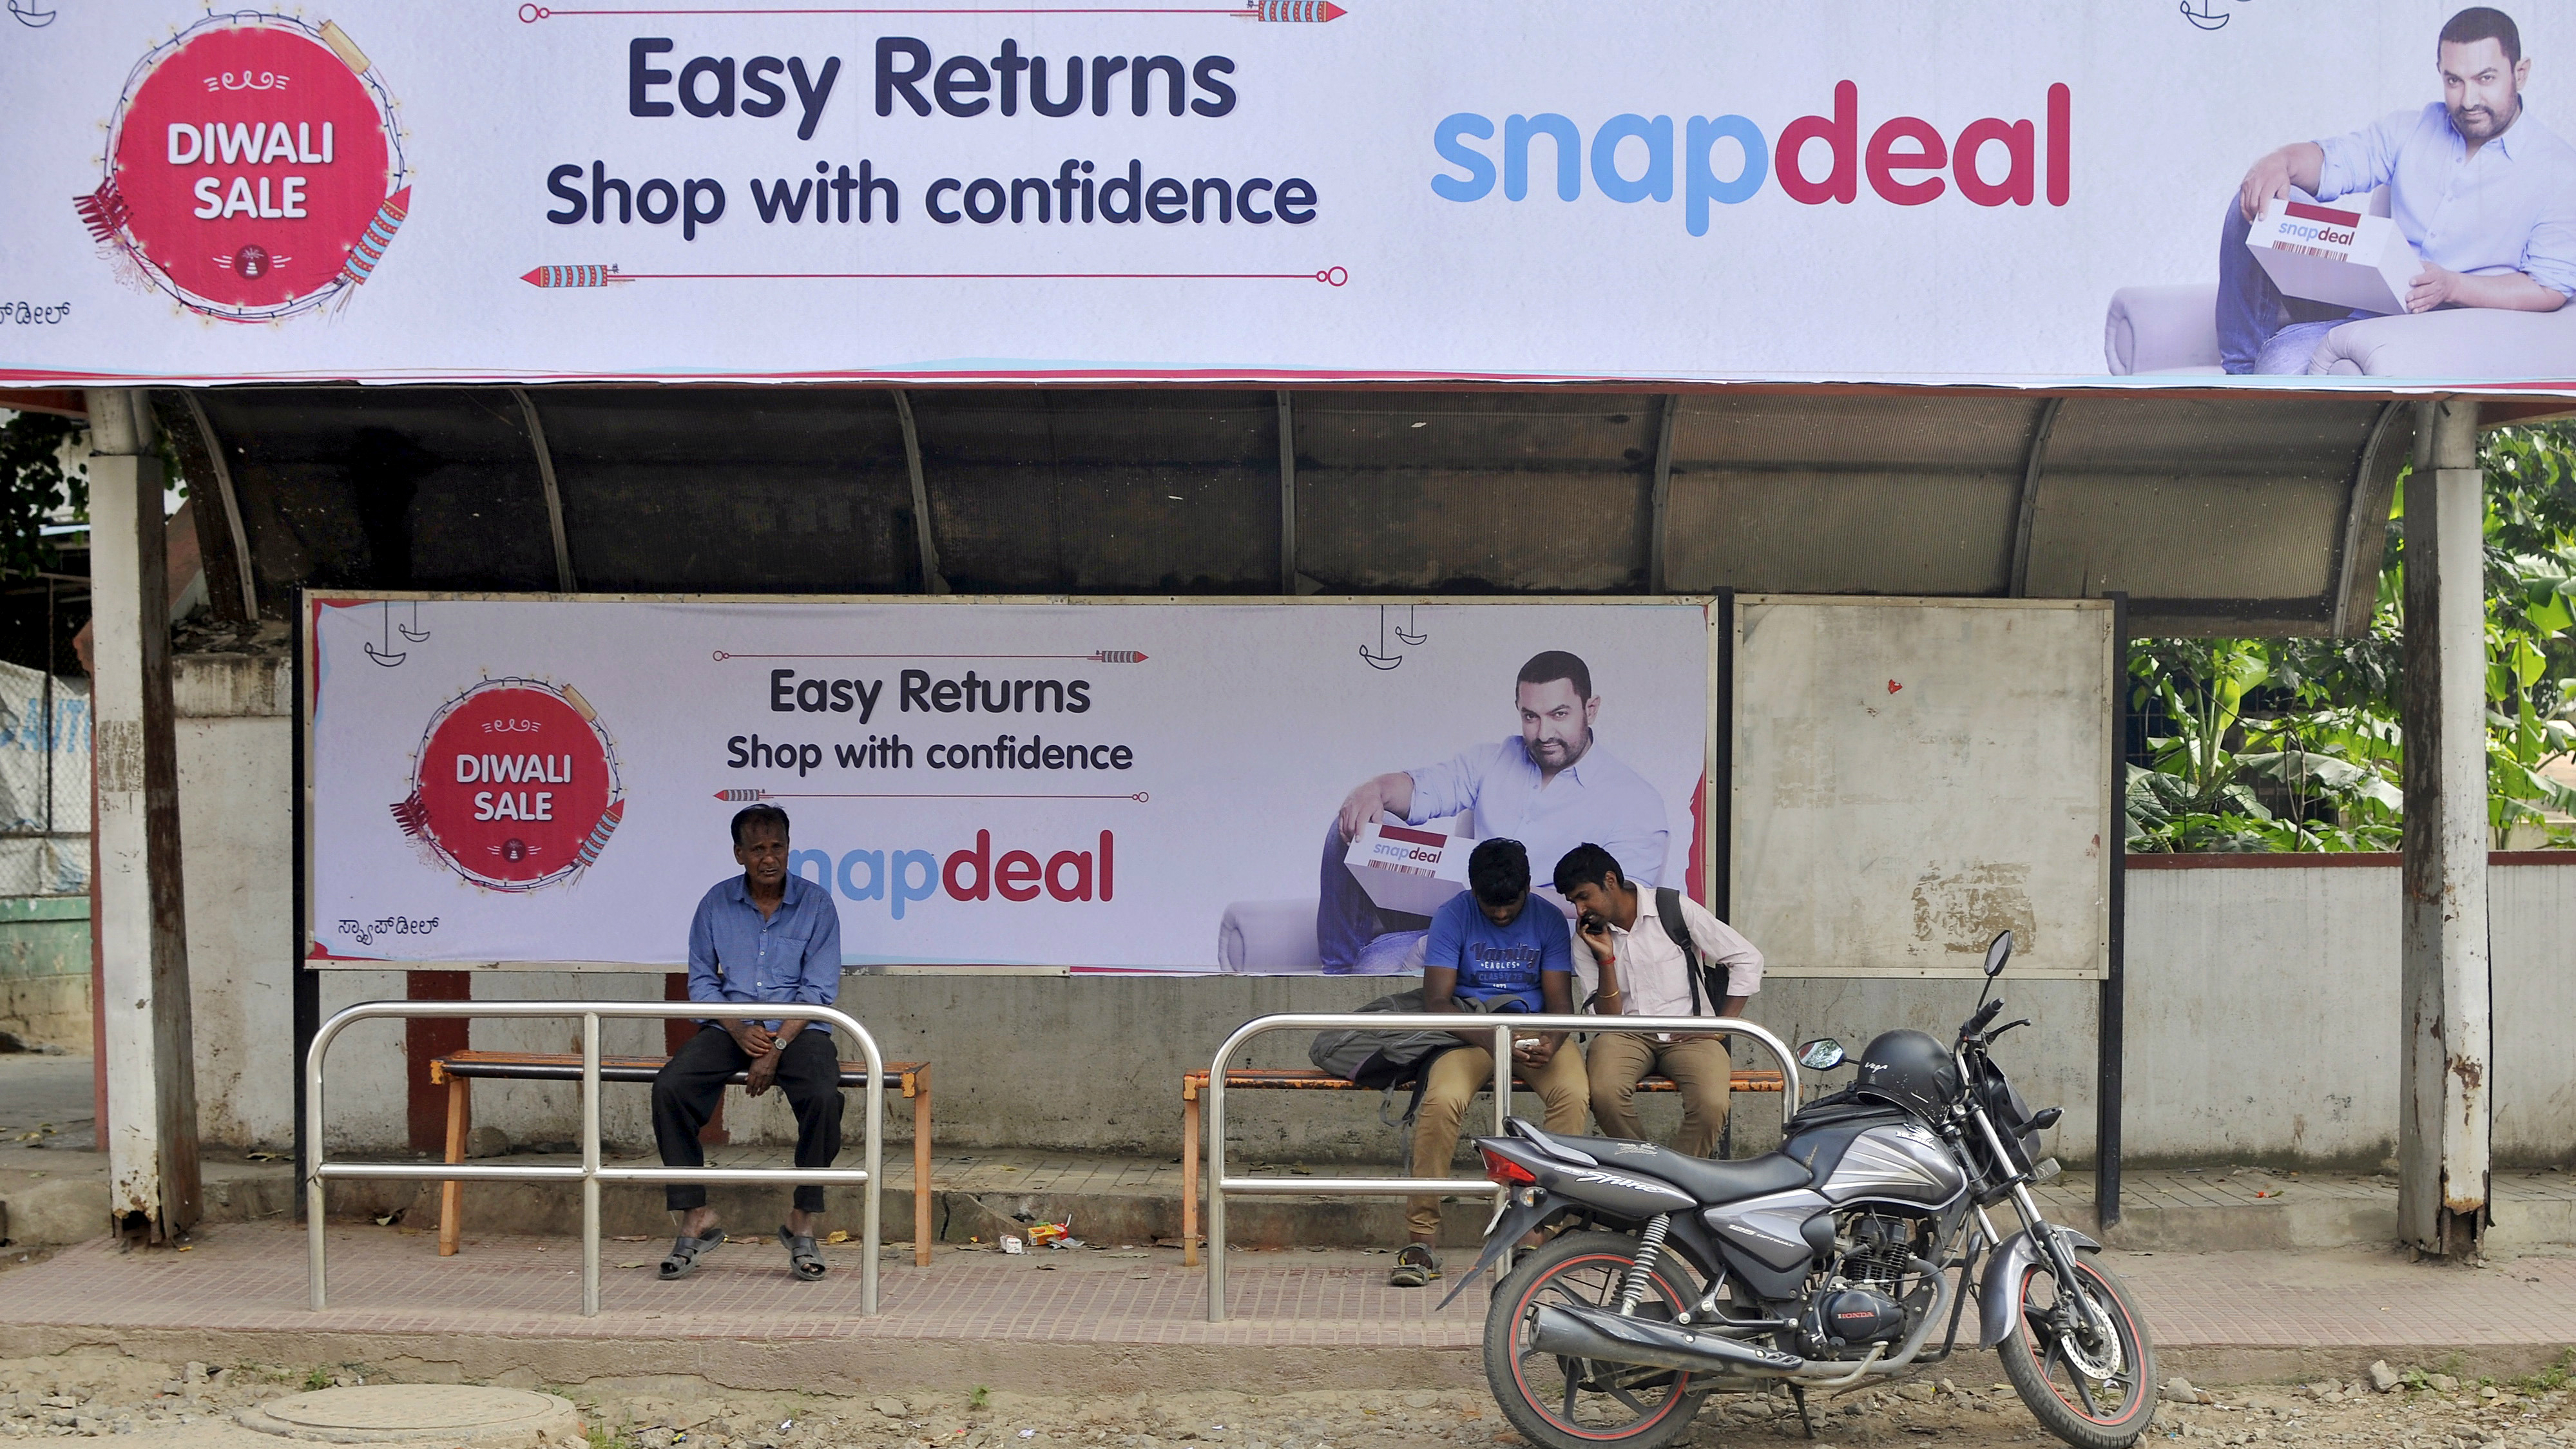 A typical online shopper in India is a man aged 25-34 buying electronics through his mobile phone